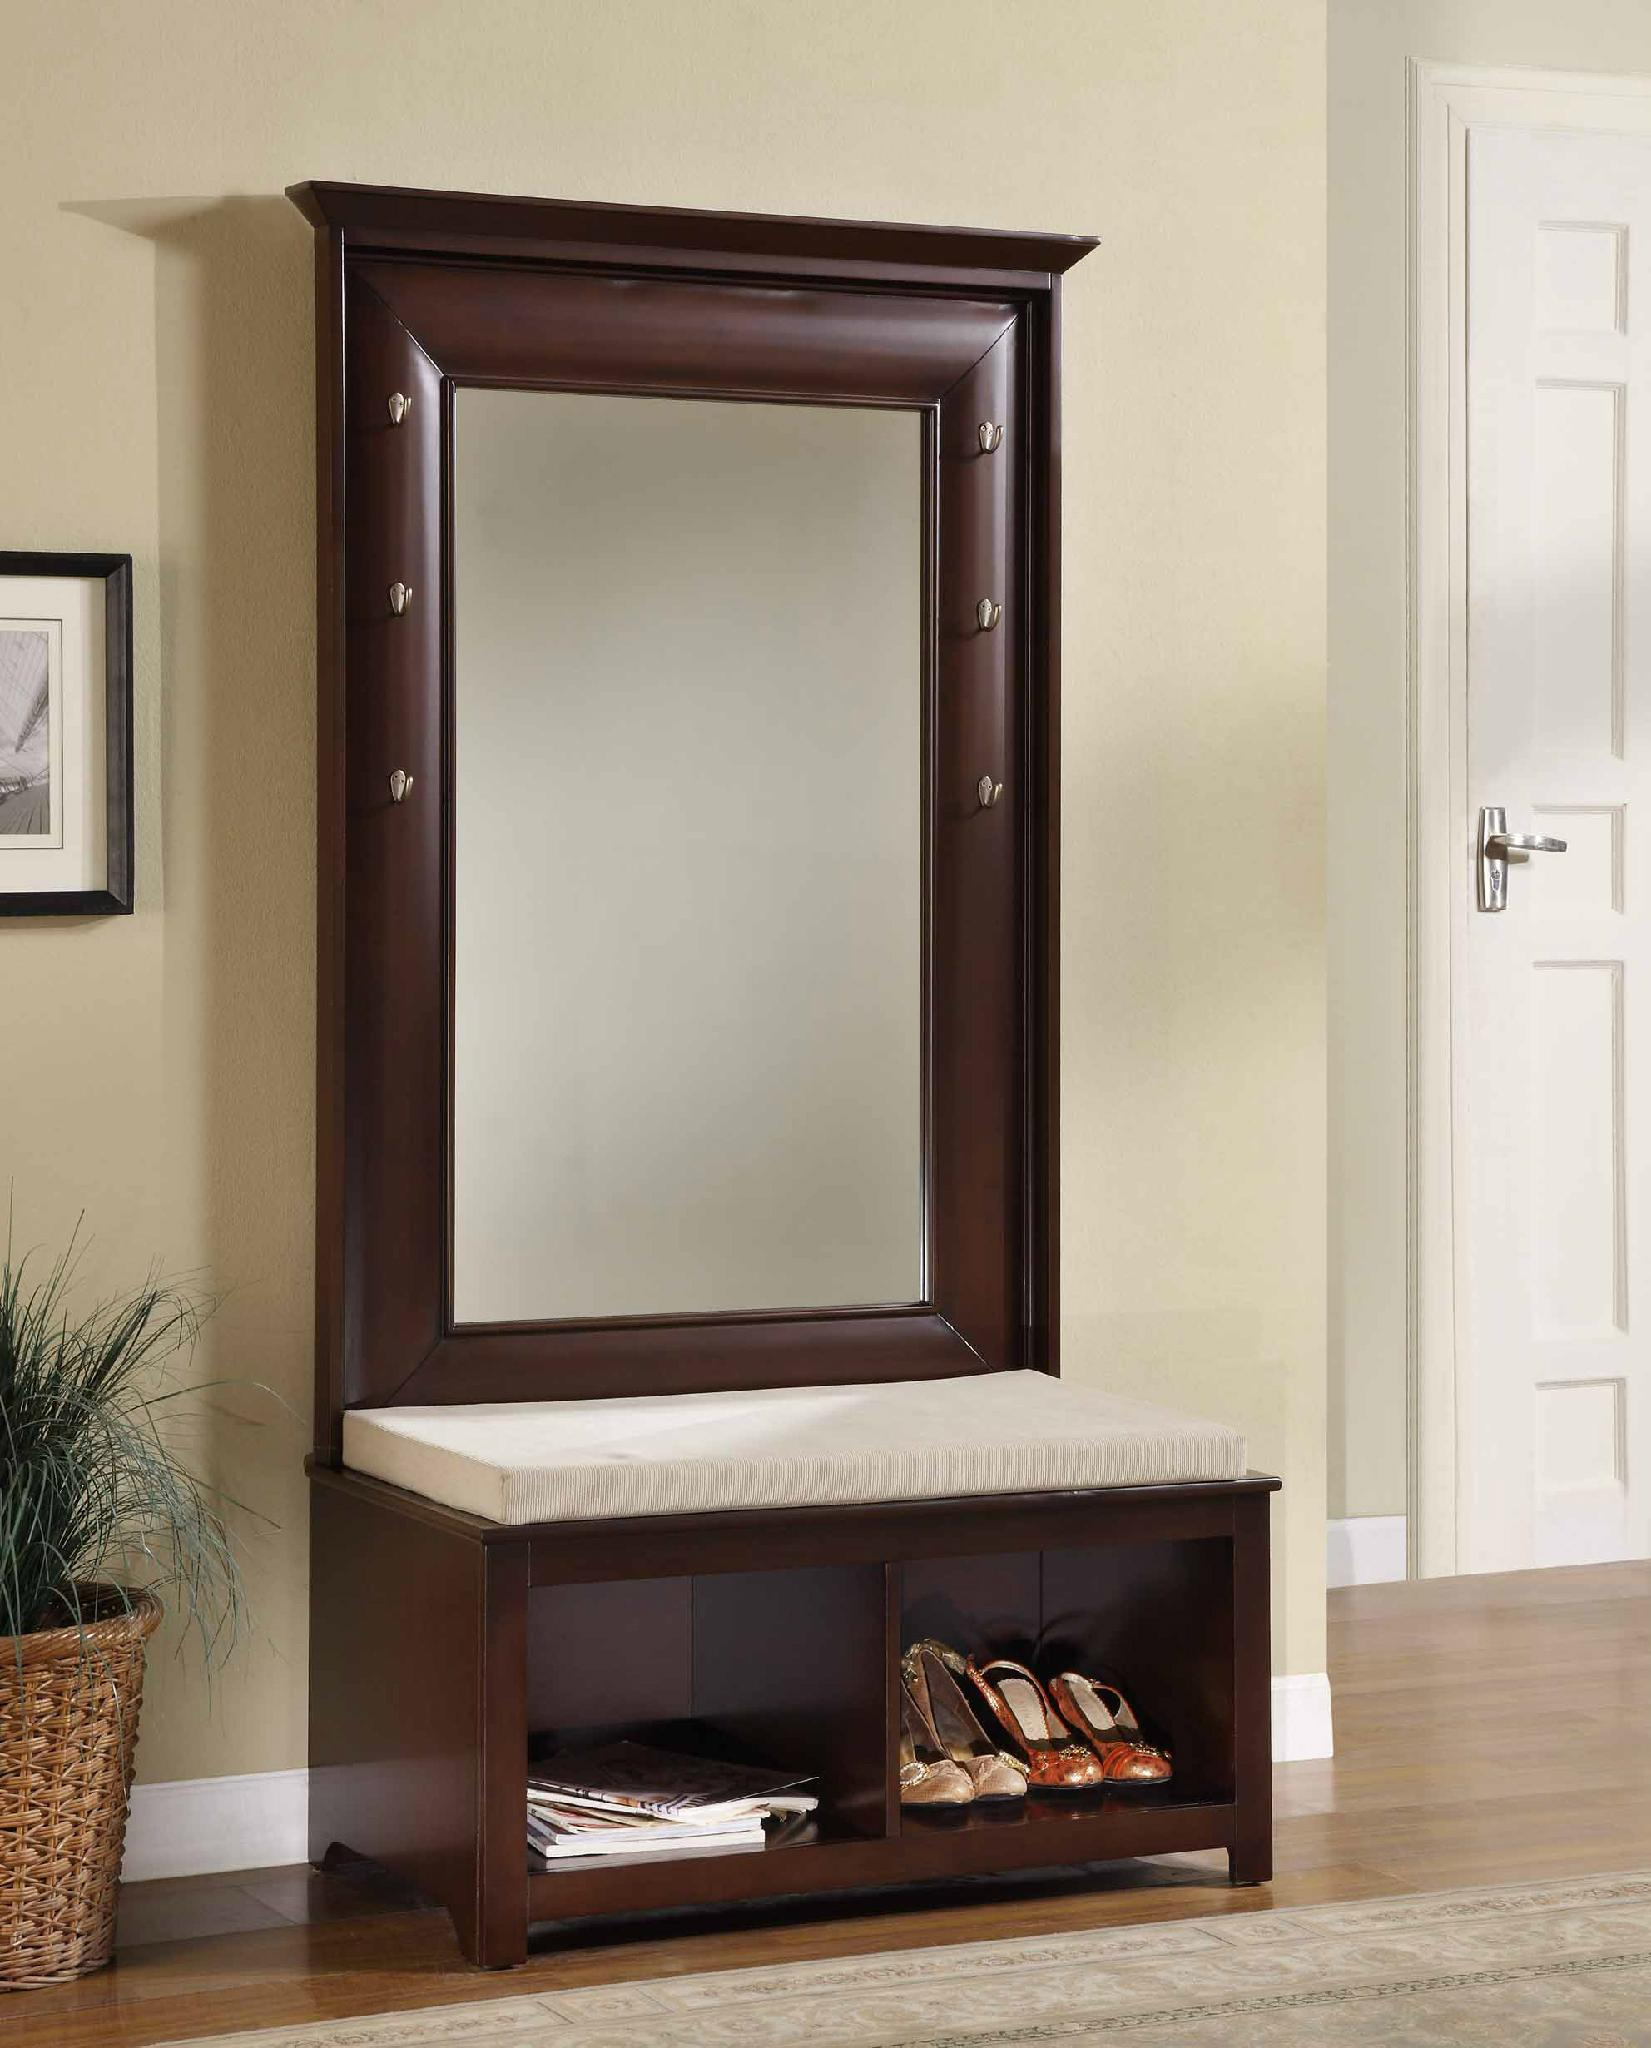 Living Room Mirror Hall Tree Entryway Wood Storage Bench